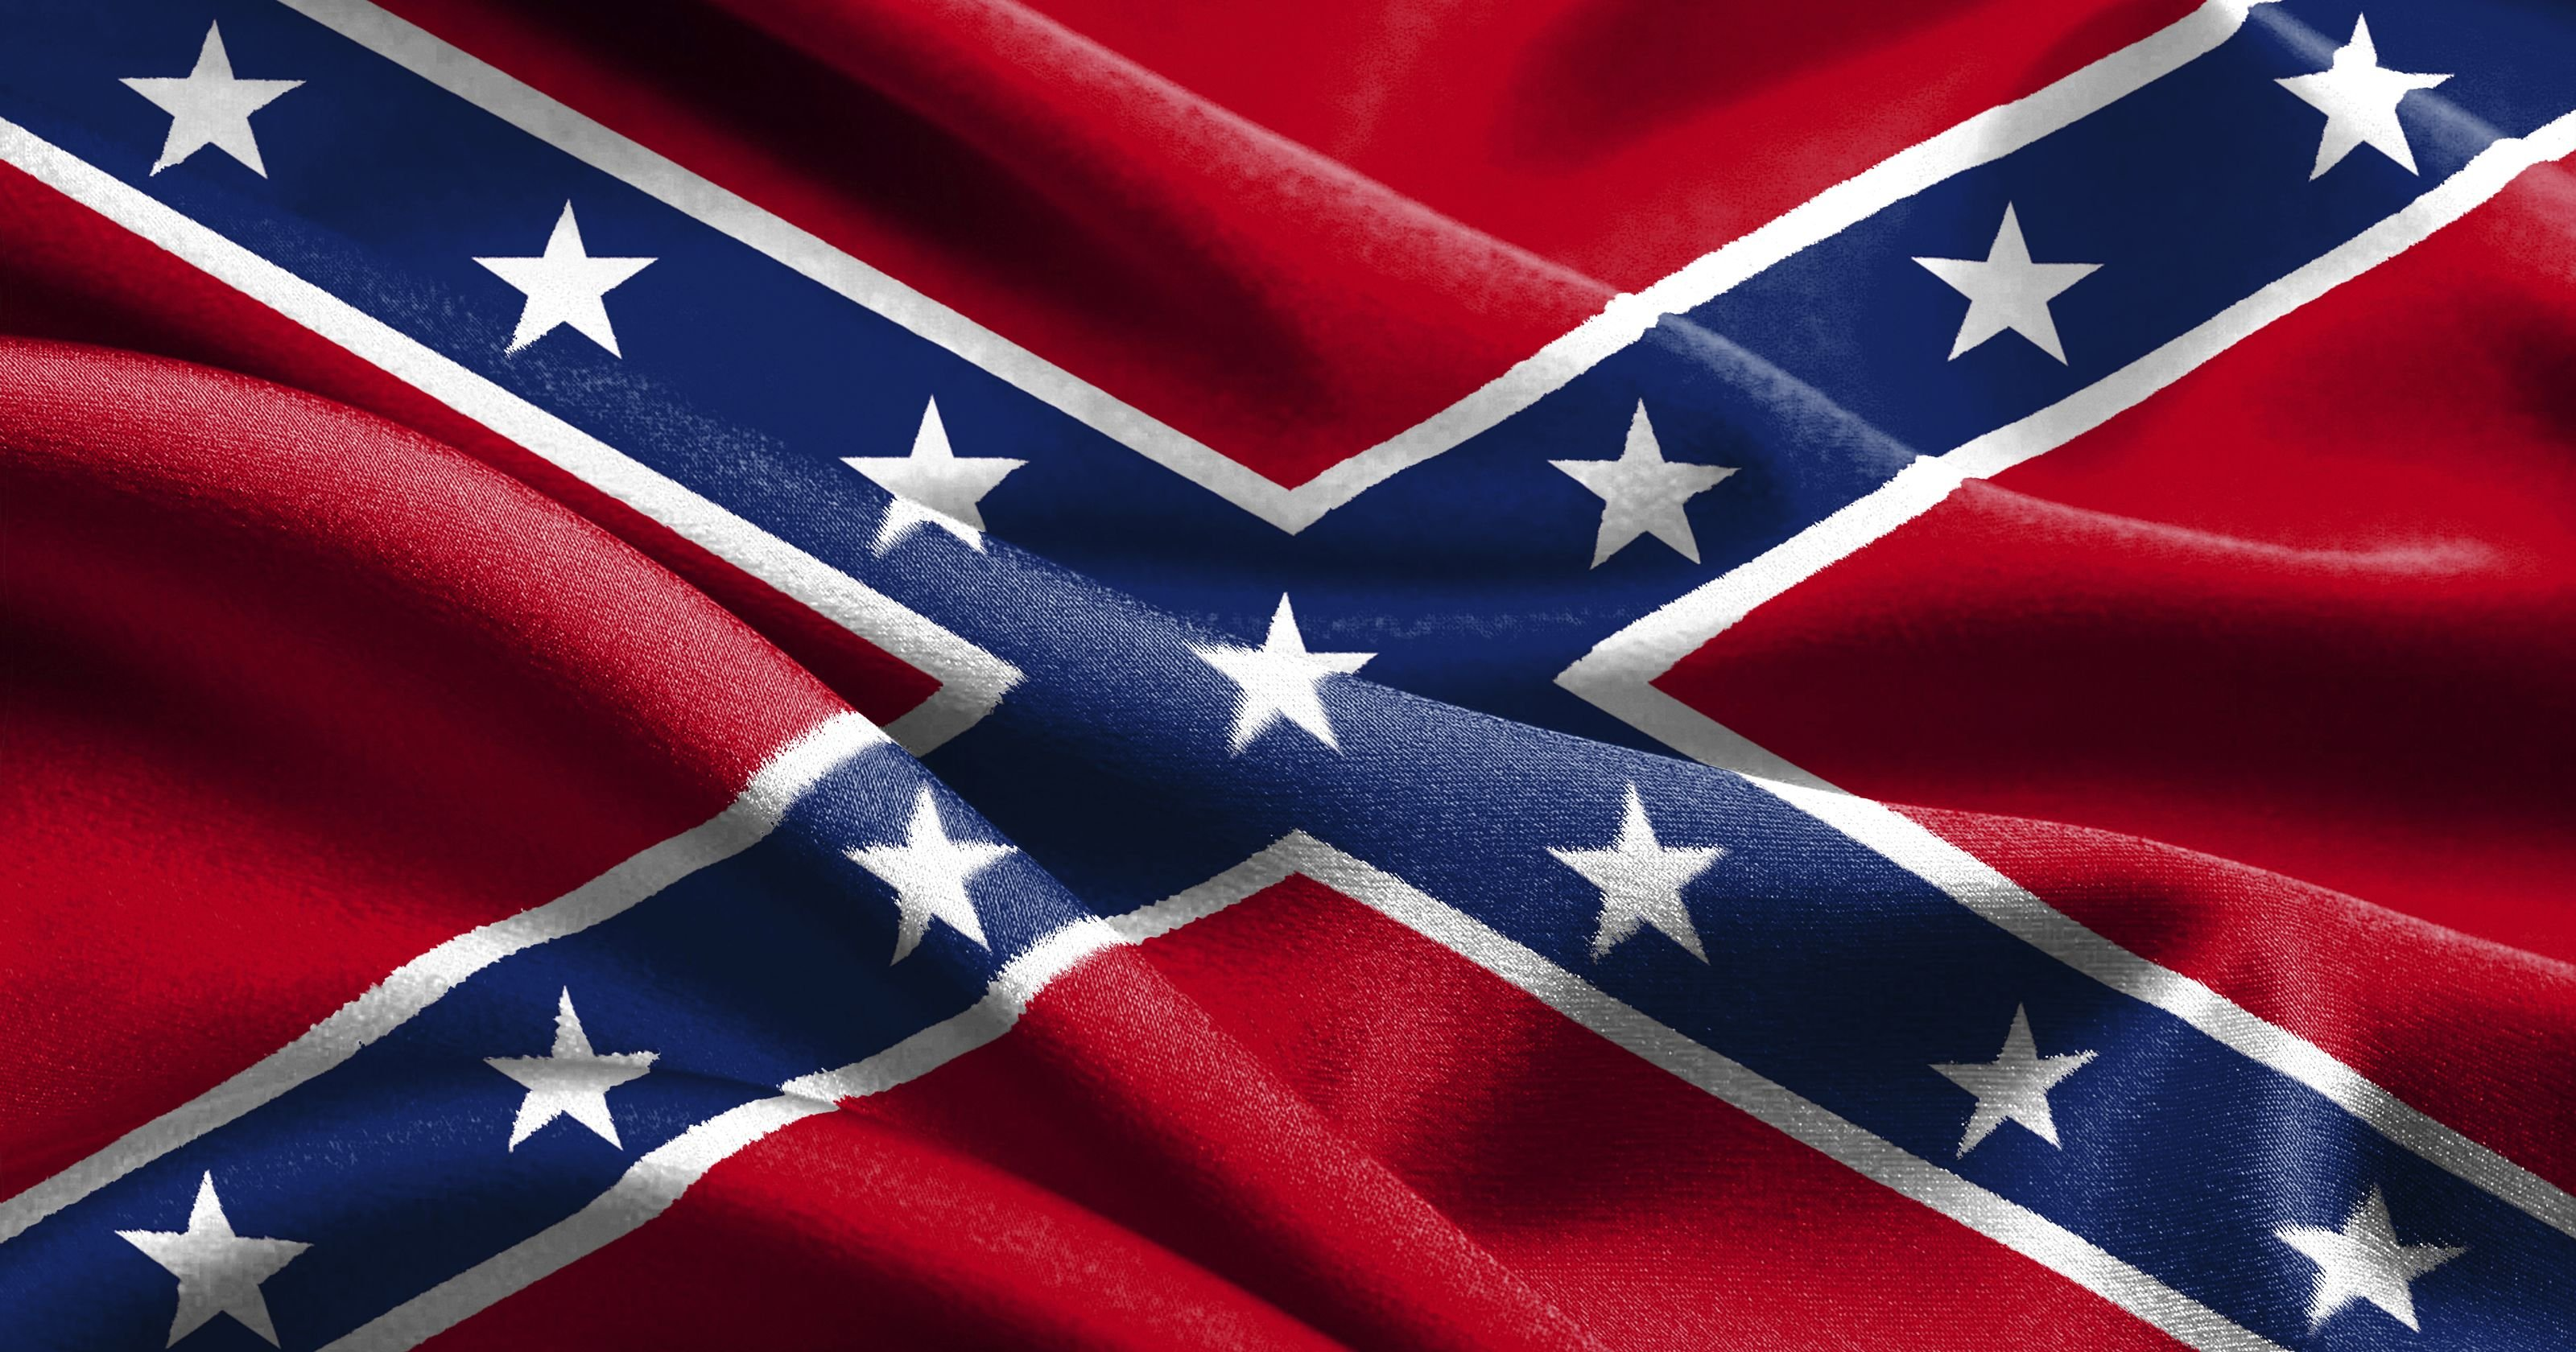 CONFEDERATE flag usa america united states csa civil war rebel dixie 3200x1680